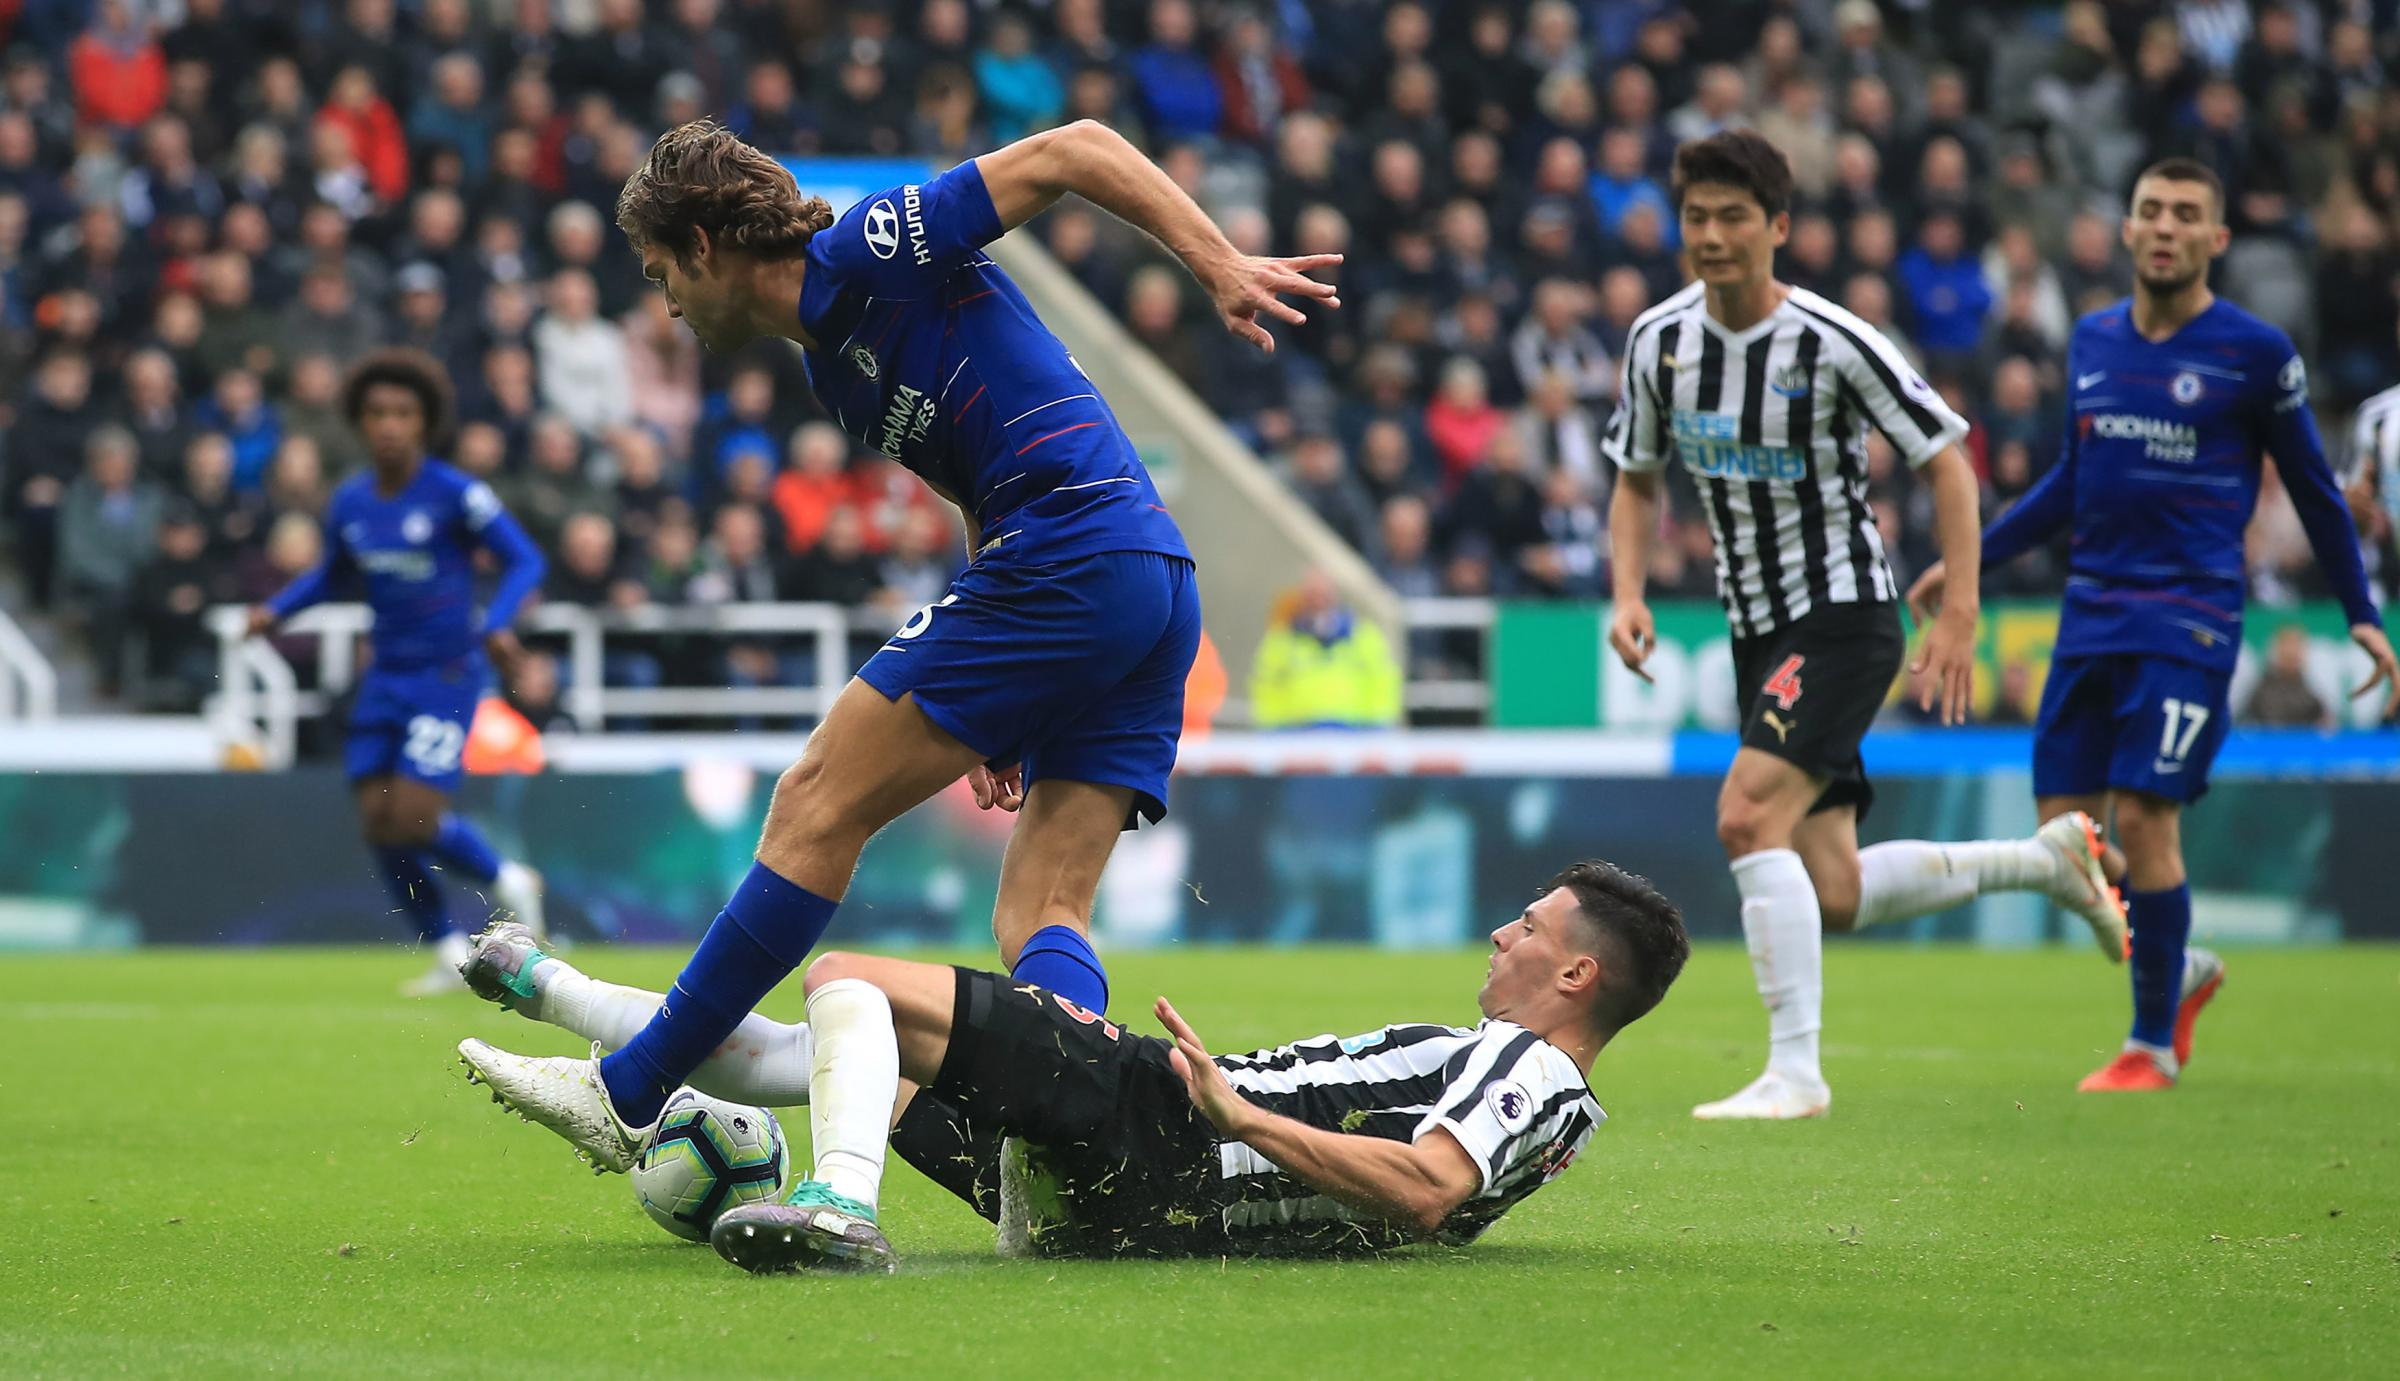 Newcastle United's Fabian Schar (bottom) is seen to have fouled Chelsea's Marcos Alonso during the Premier League match at St James' Park, Newcastle. PRESS ASSOCIATION Photo. Picture date: Sunday August 26, 2018. See PA story SOCCER Newcastle.